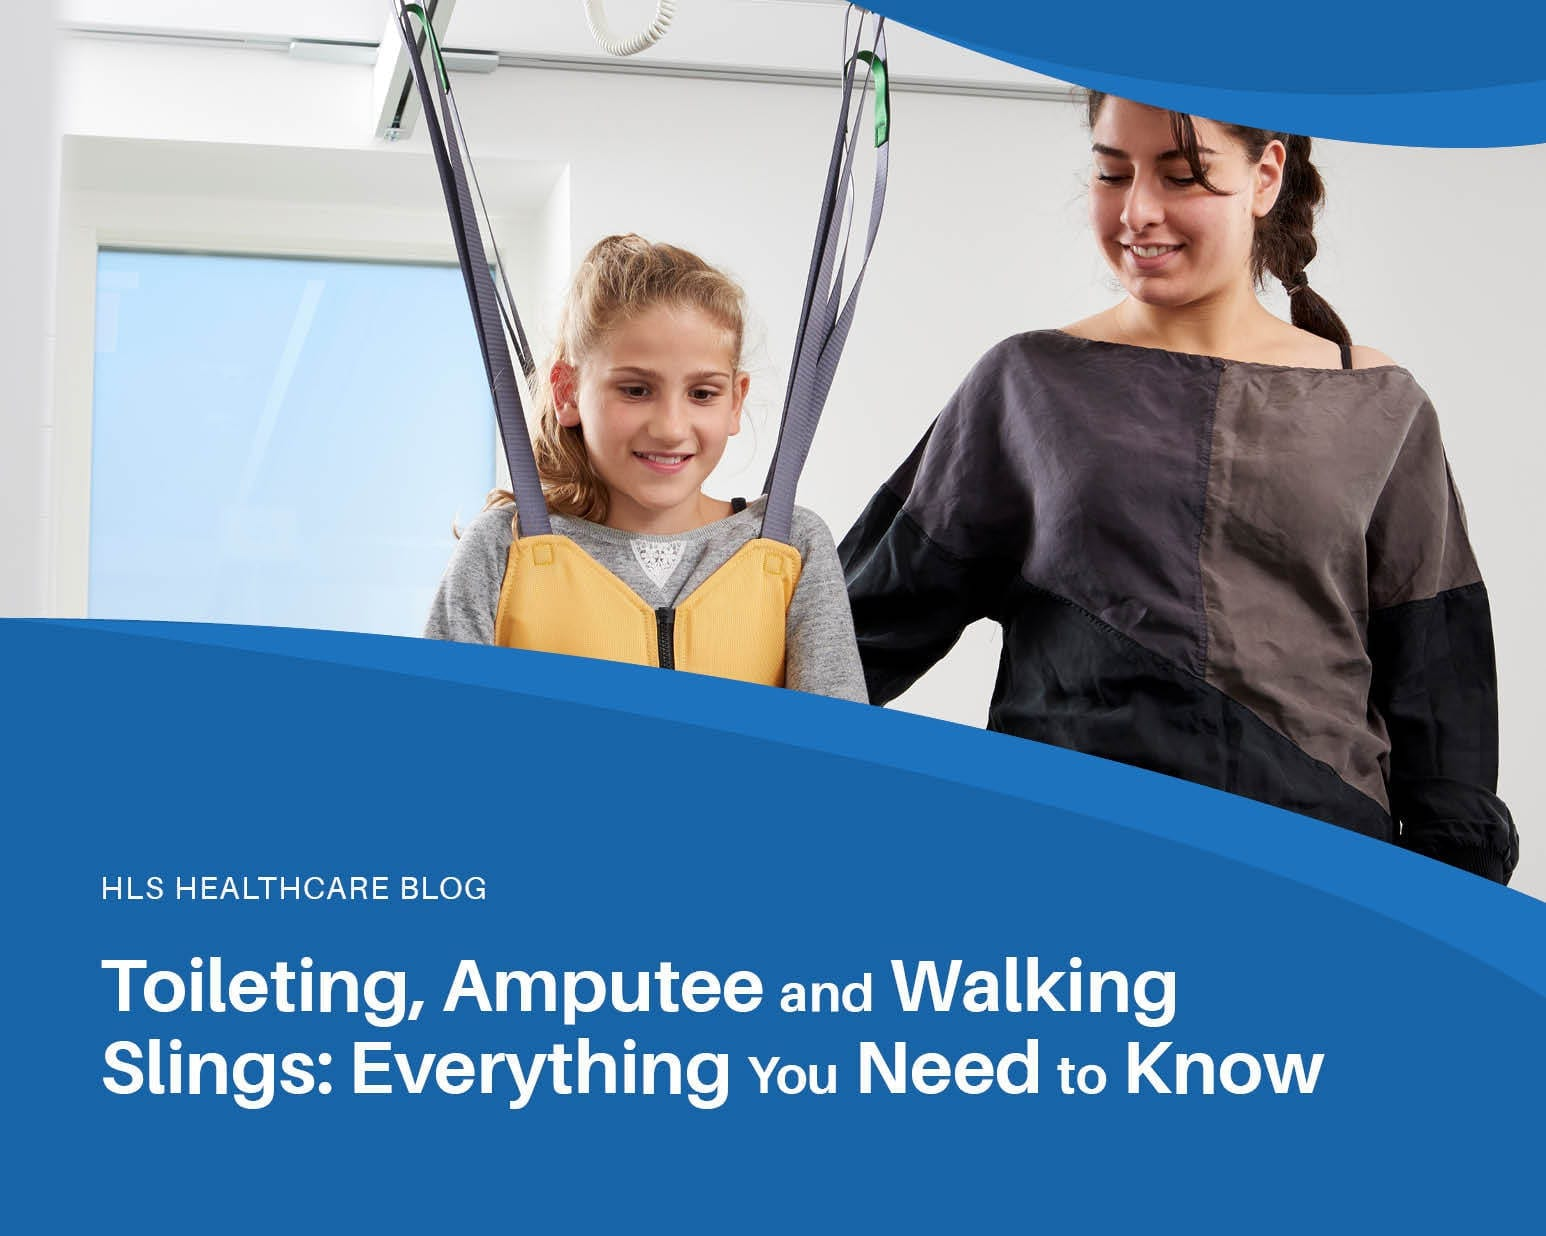 Toileting Sling, Amputee Sling and Walking Sling Everything You Need to Know